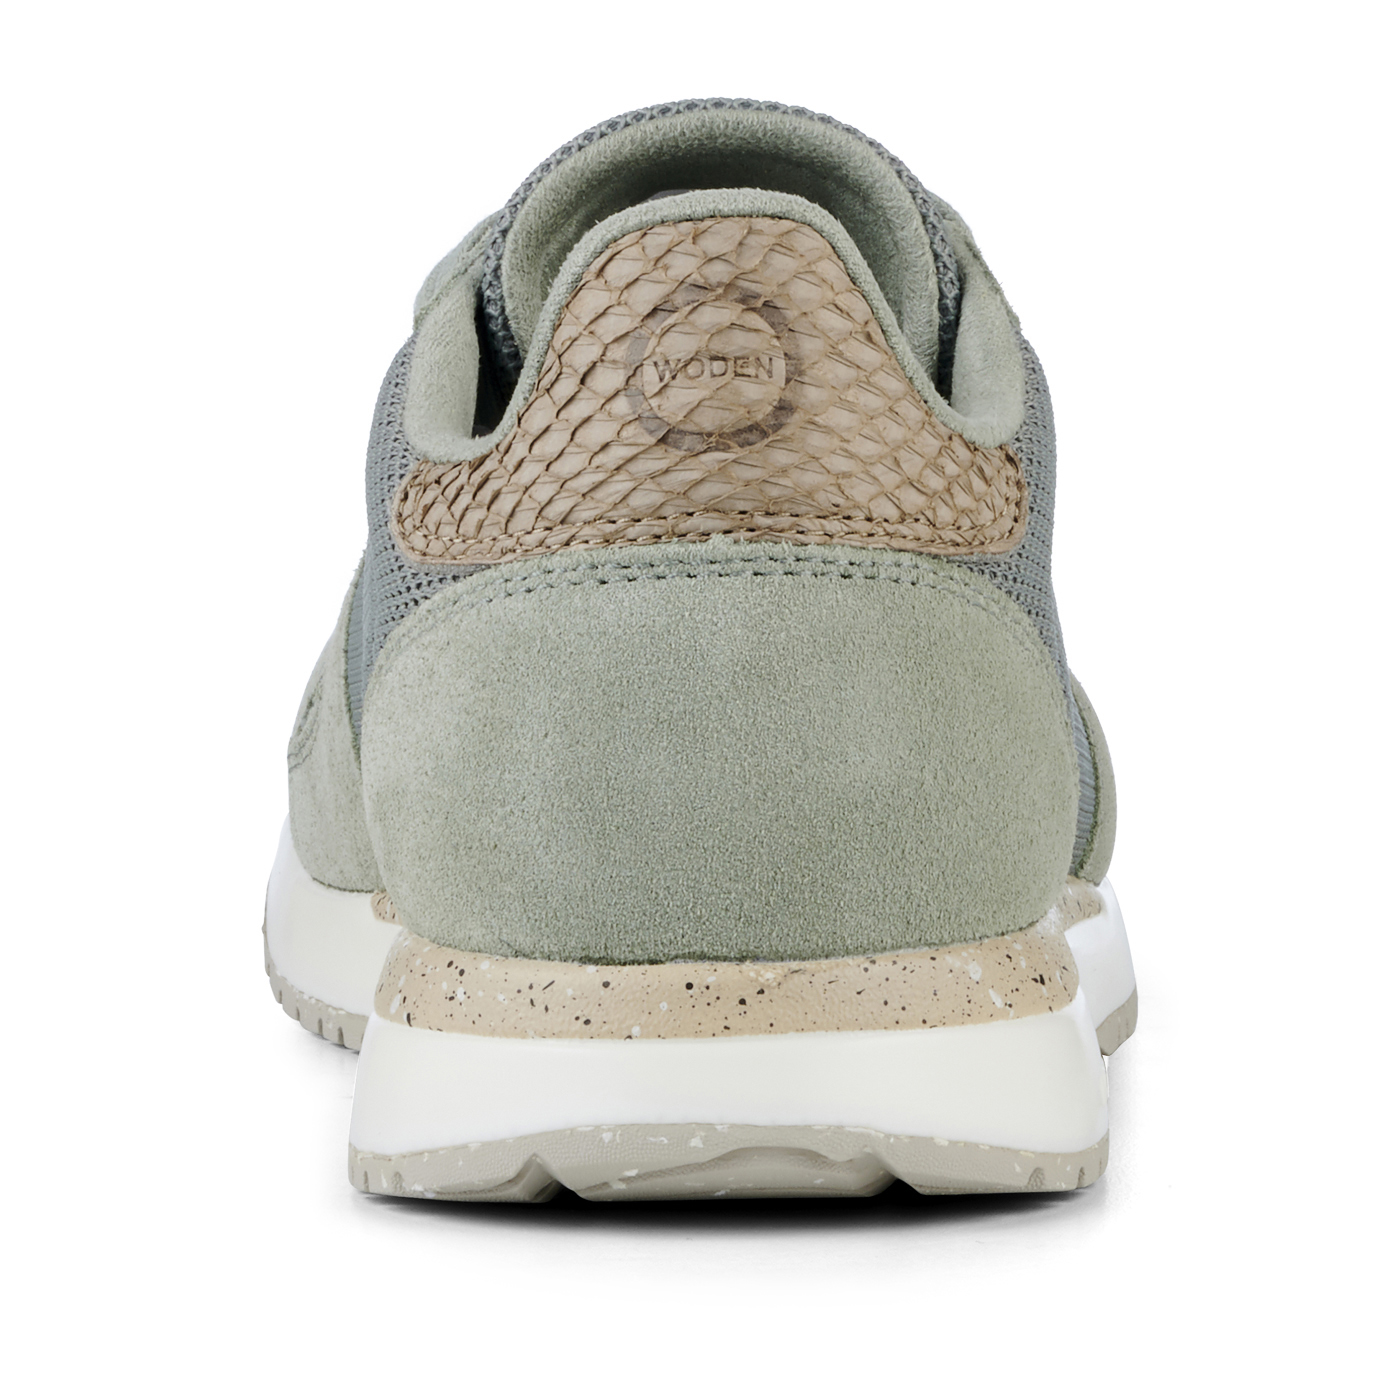 Woden WL132 sneakers, Seagrass, 38